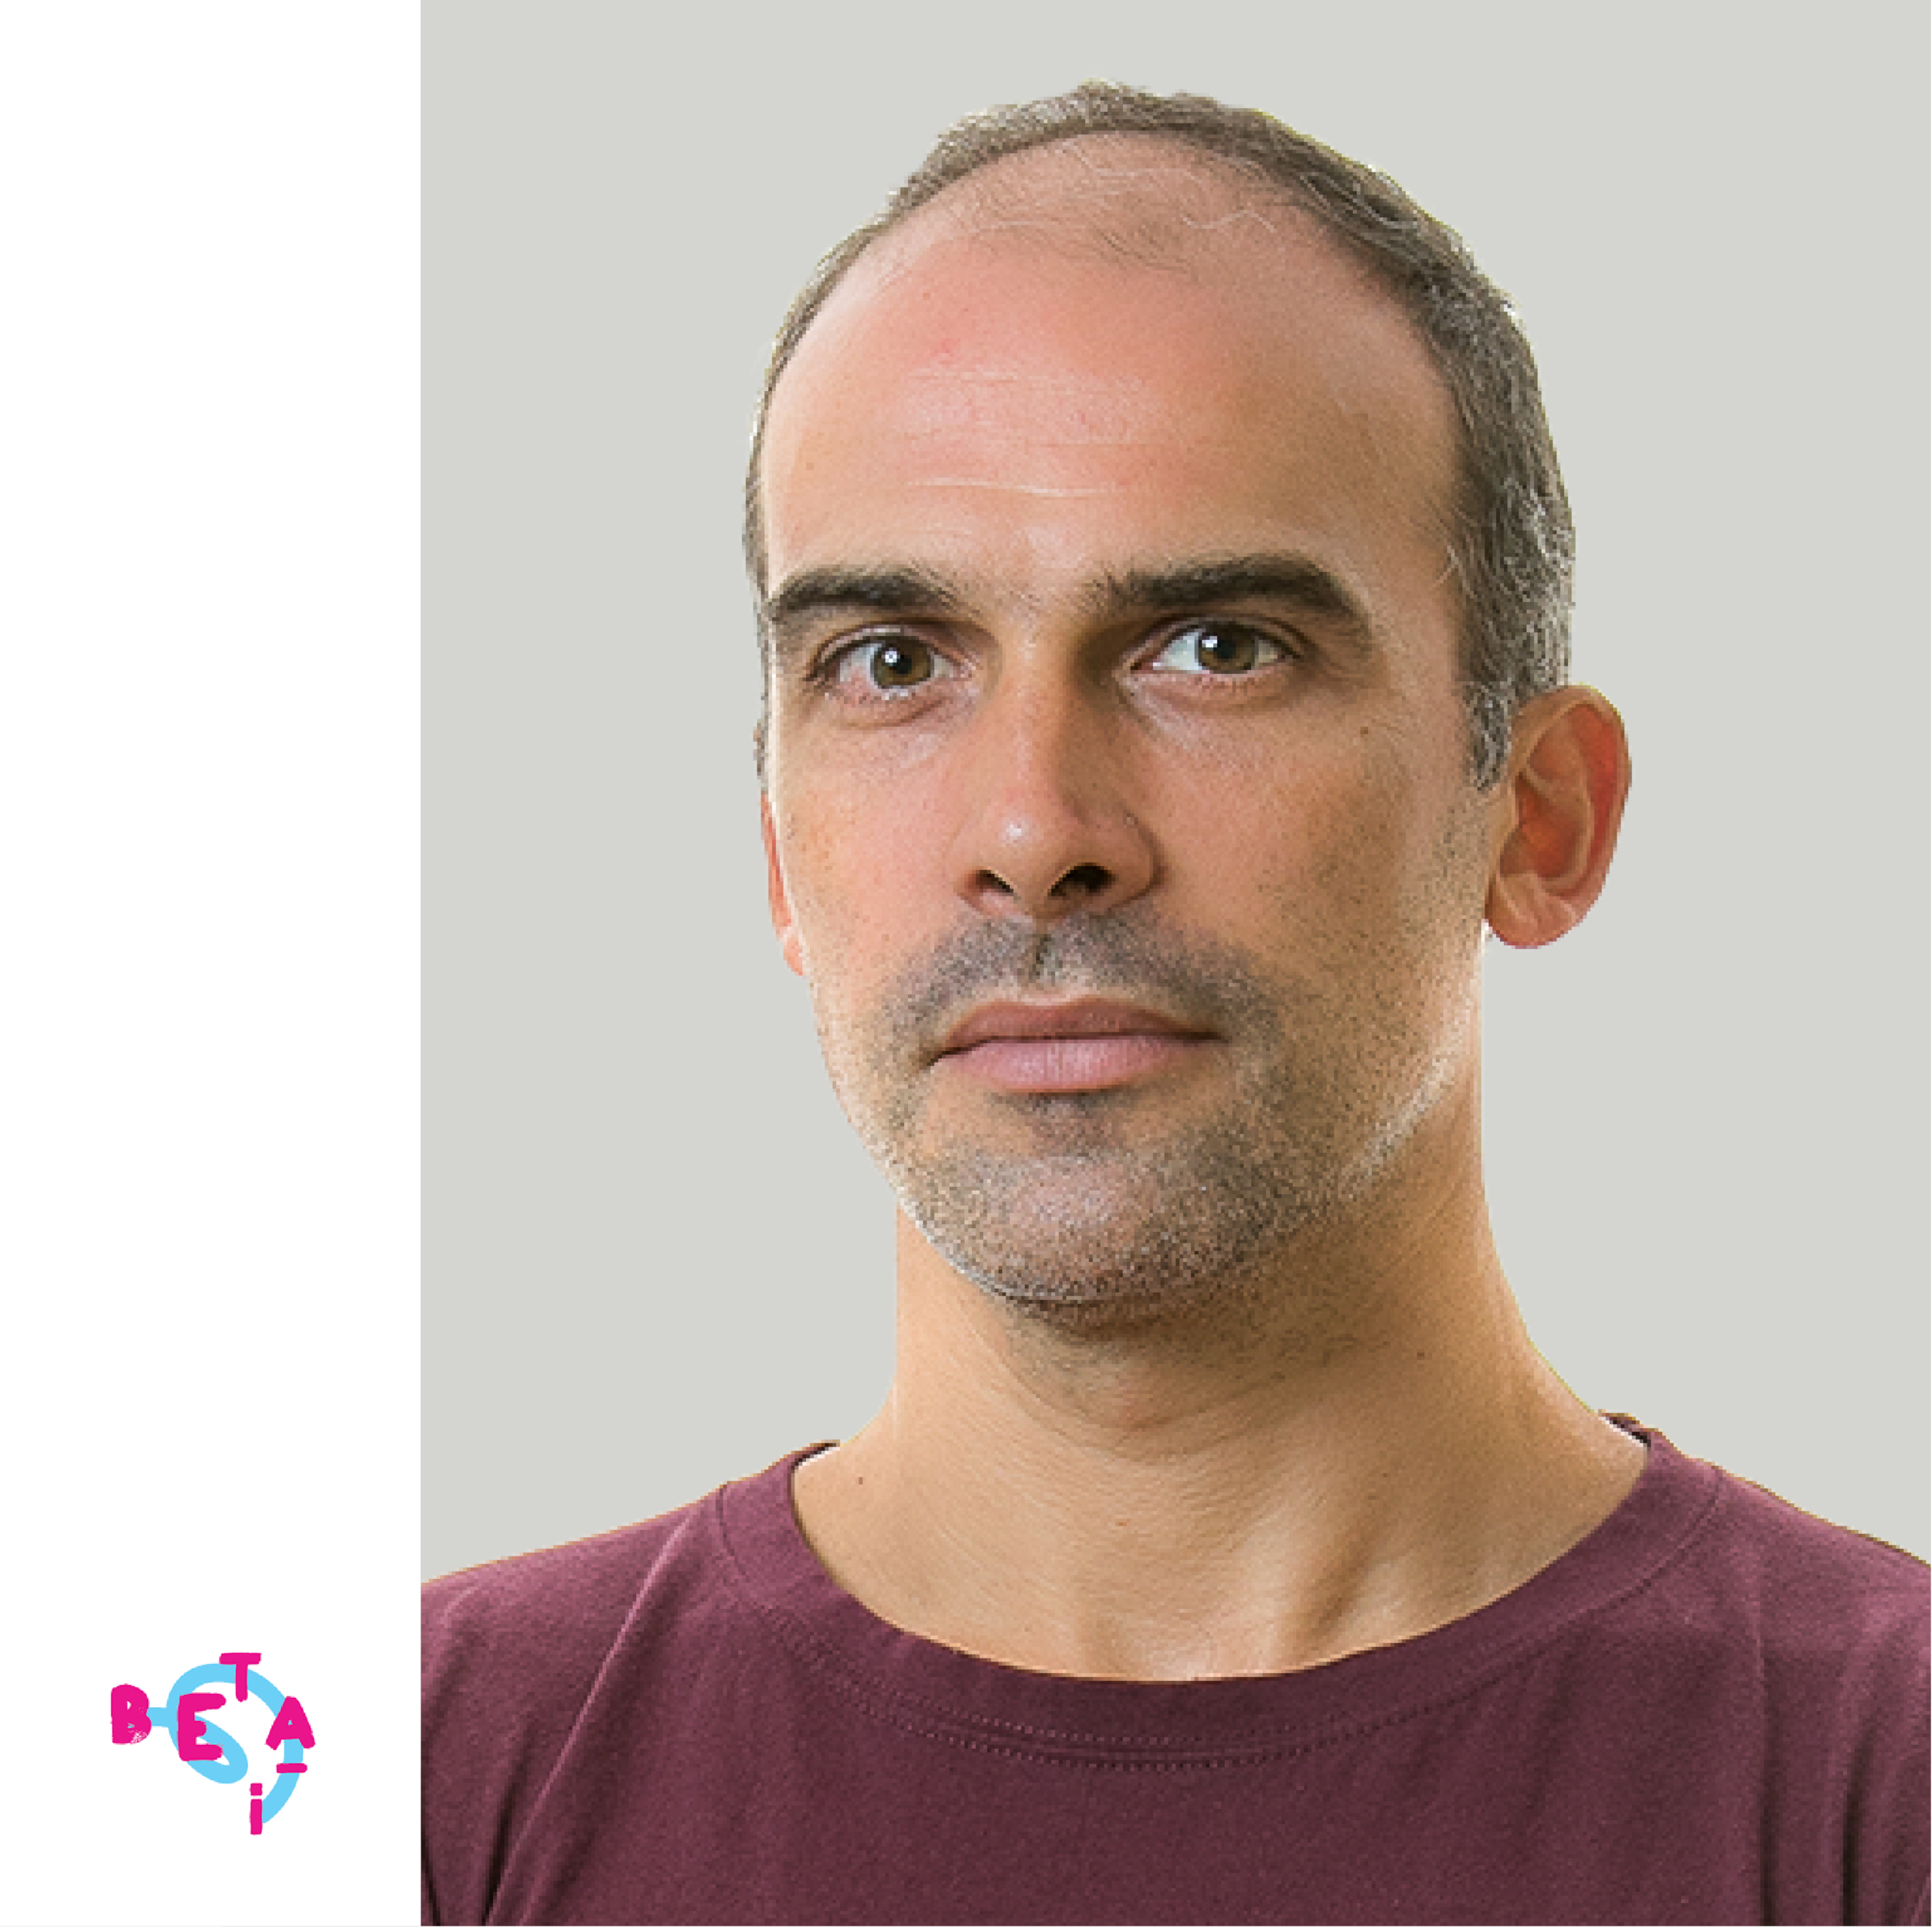 Pedro is Co-Founder and CEO of Beta-i, a platform created to build innovation ecosystems and boost entrepreneurship, mainly focused on acceleration, events, corporate (innovation & open innovation), education, investment and Hub. Recognized as one of the most active accelerators in Europe, Beta-i was considered a  key incubator in the Lisbon scene  by Wired in 2016 and the  biggest startup & entrepreneurship promoter in Europe  by the European Enterprise Promotion Awards in 2014. Pedro is also Co-Founder and Managing Partner of LC Ventures, a venture capital fund investing in pre-seed and seed phases of innovative tech startups from Europe, North and Latin America. Pedro is a serial entrepreneur, member of several organizations including European Startup Network, Startup Portugal and the Portuguese Business Angel Association, a frequent speaker at conferences and a frequent writer for publishers such as Forbes Portugal and Dinheiro Vivo.